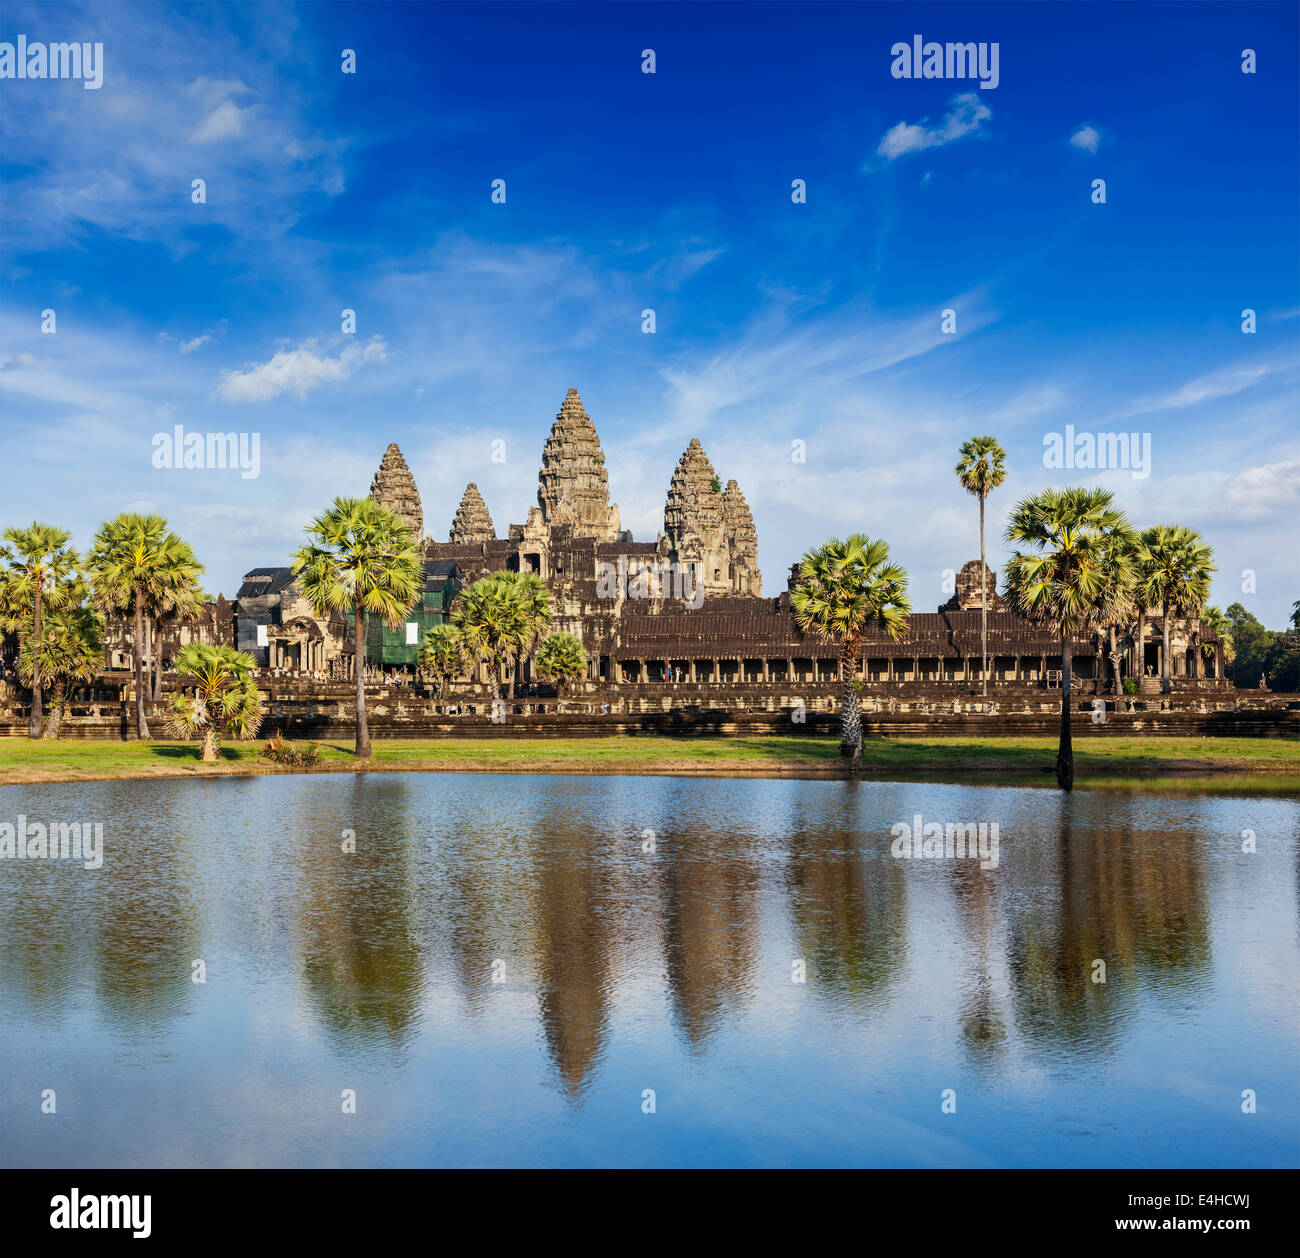 Cambodia landmark Angkor Wat with reflection in water - Stock Image